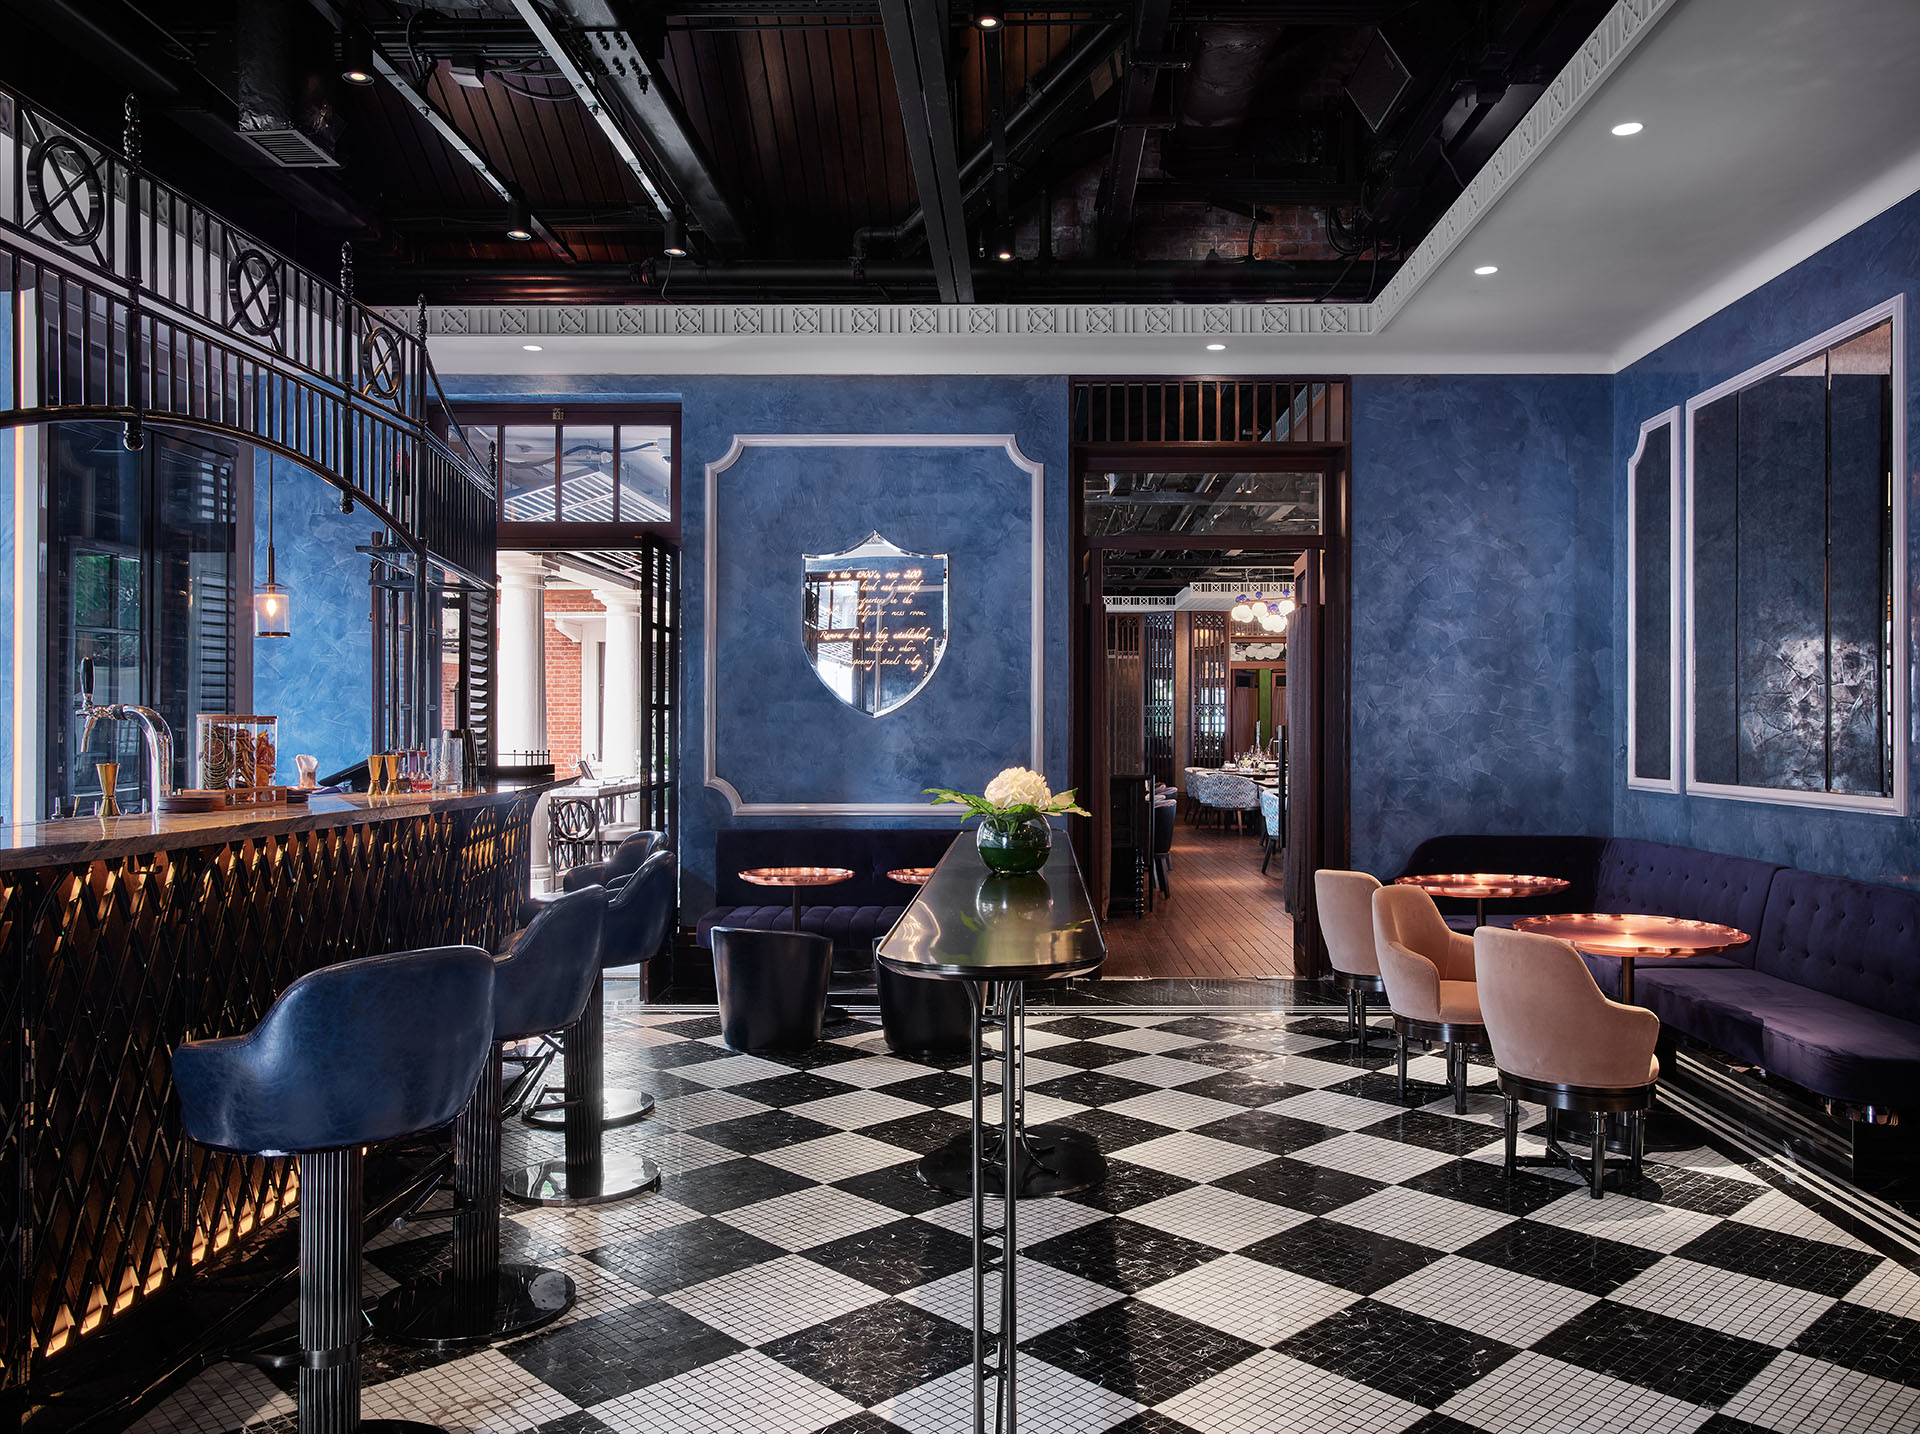 The bar with its checkered flooring at The Dispensary |AB Concept | Ed Ng | Terence Ngan | STIRworld